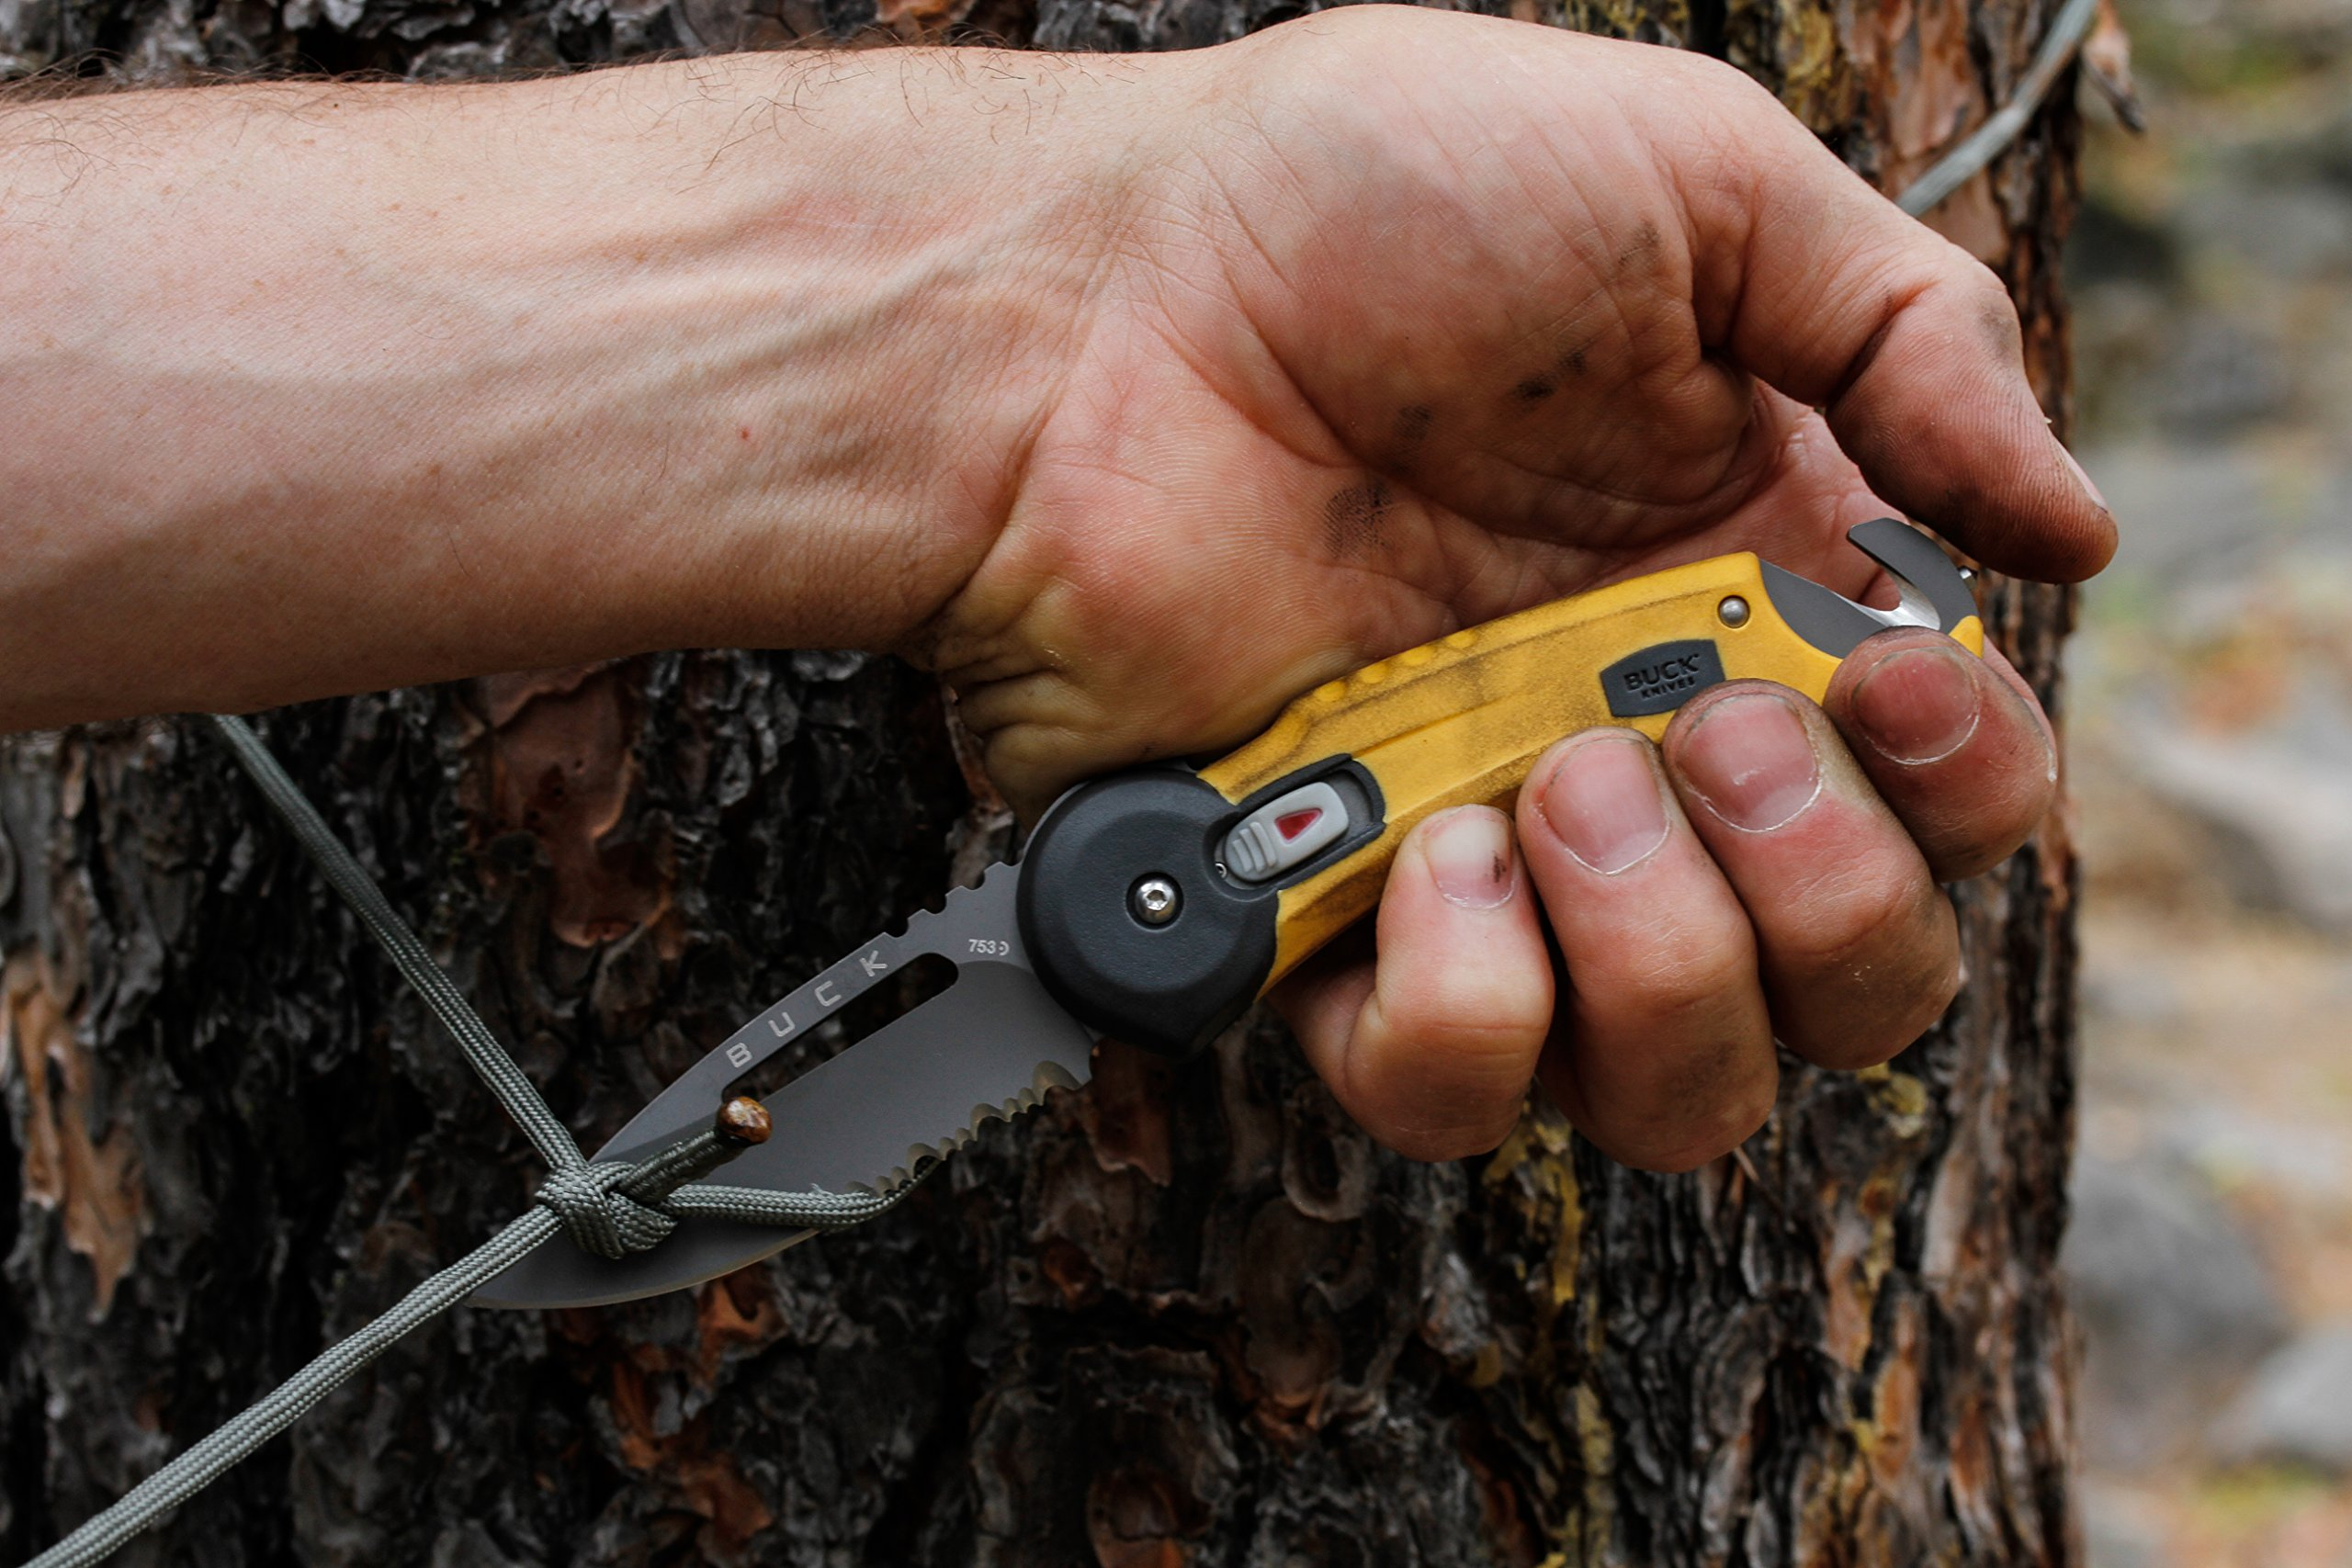 Buck Knives BU753YWX-BRK Redpoint Rescue Tactical Folding Knife Strap Cutter Glass Breaker, Yellow by Buck Knives (Image #4)